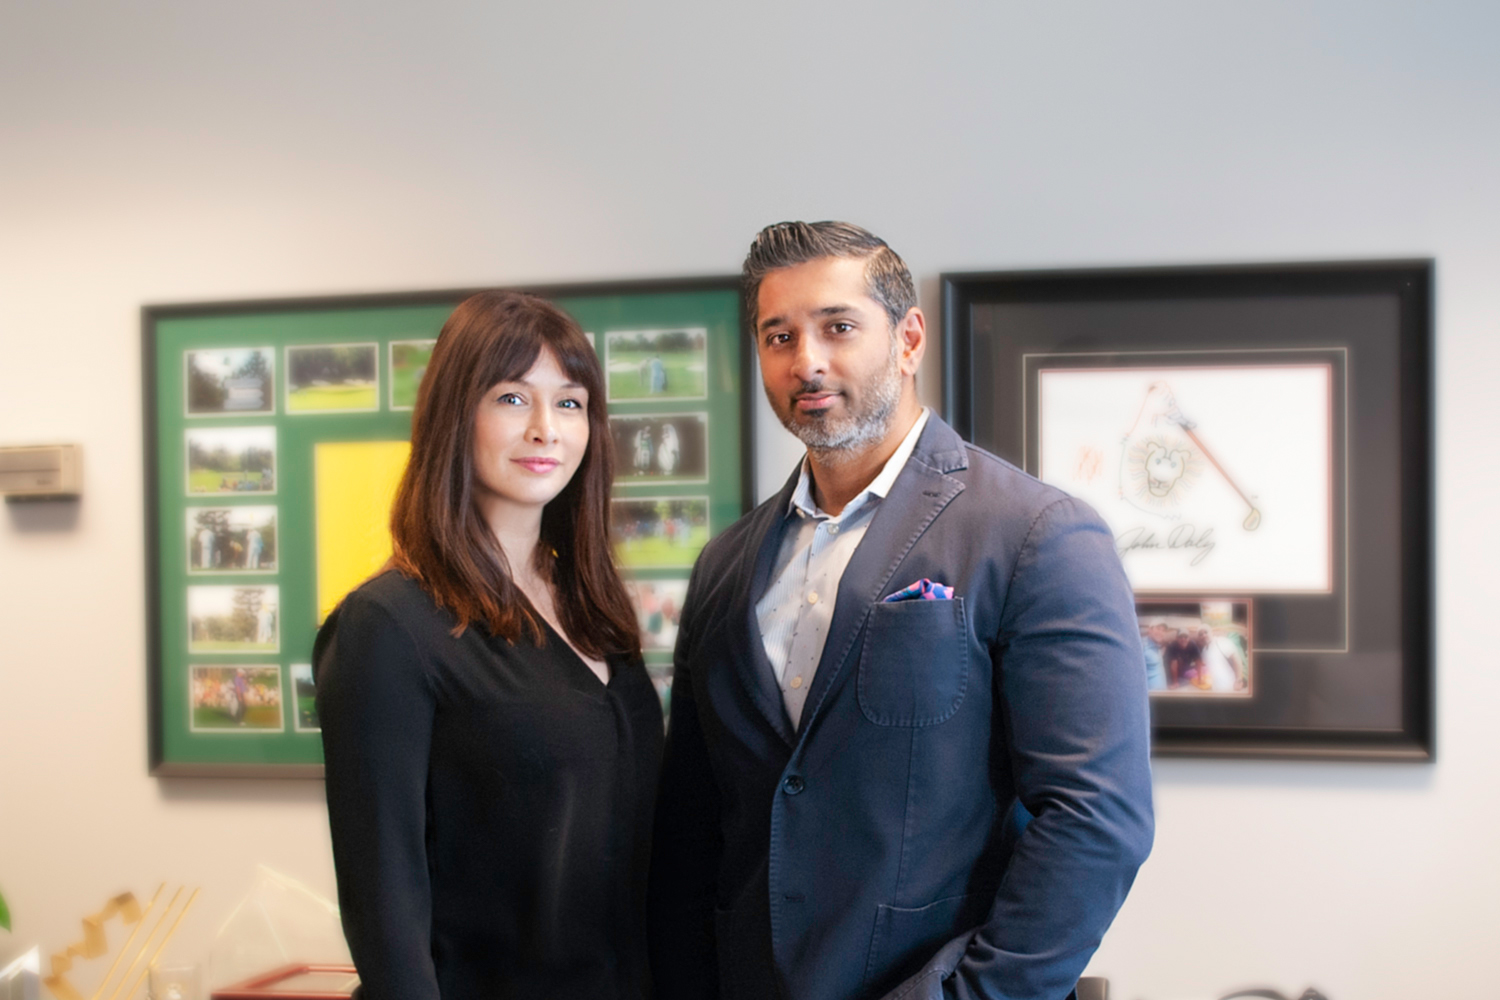 Canadian data collection firm Delvinia has named Raj Manocha President of its Methodify platform and group Chief Revenue Officer, while Suzanne Costa moves into the roles of COO and Chief Privacy Officer. The company has also received an undisclosed amount of funding.